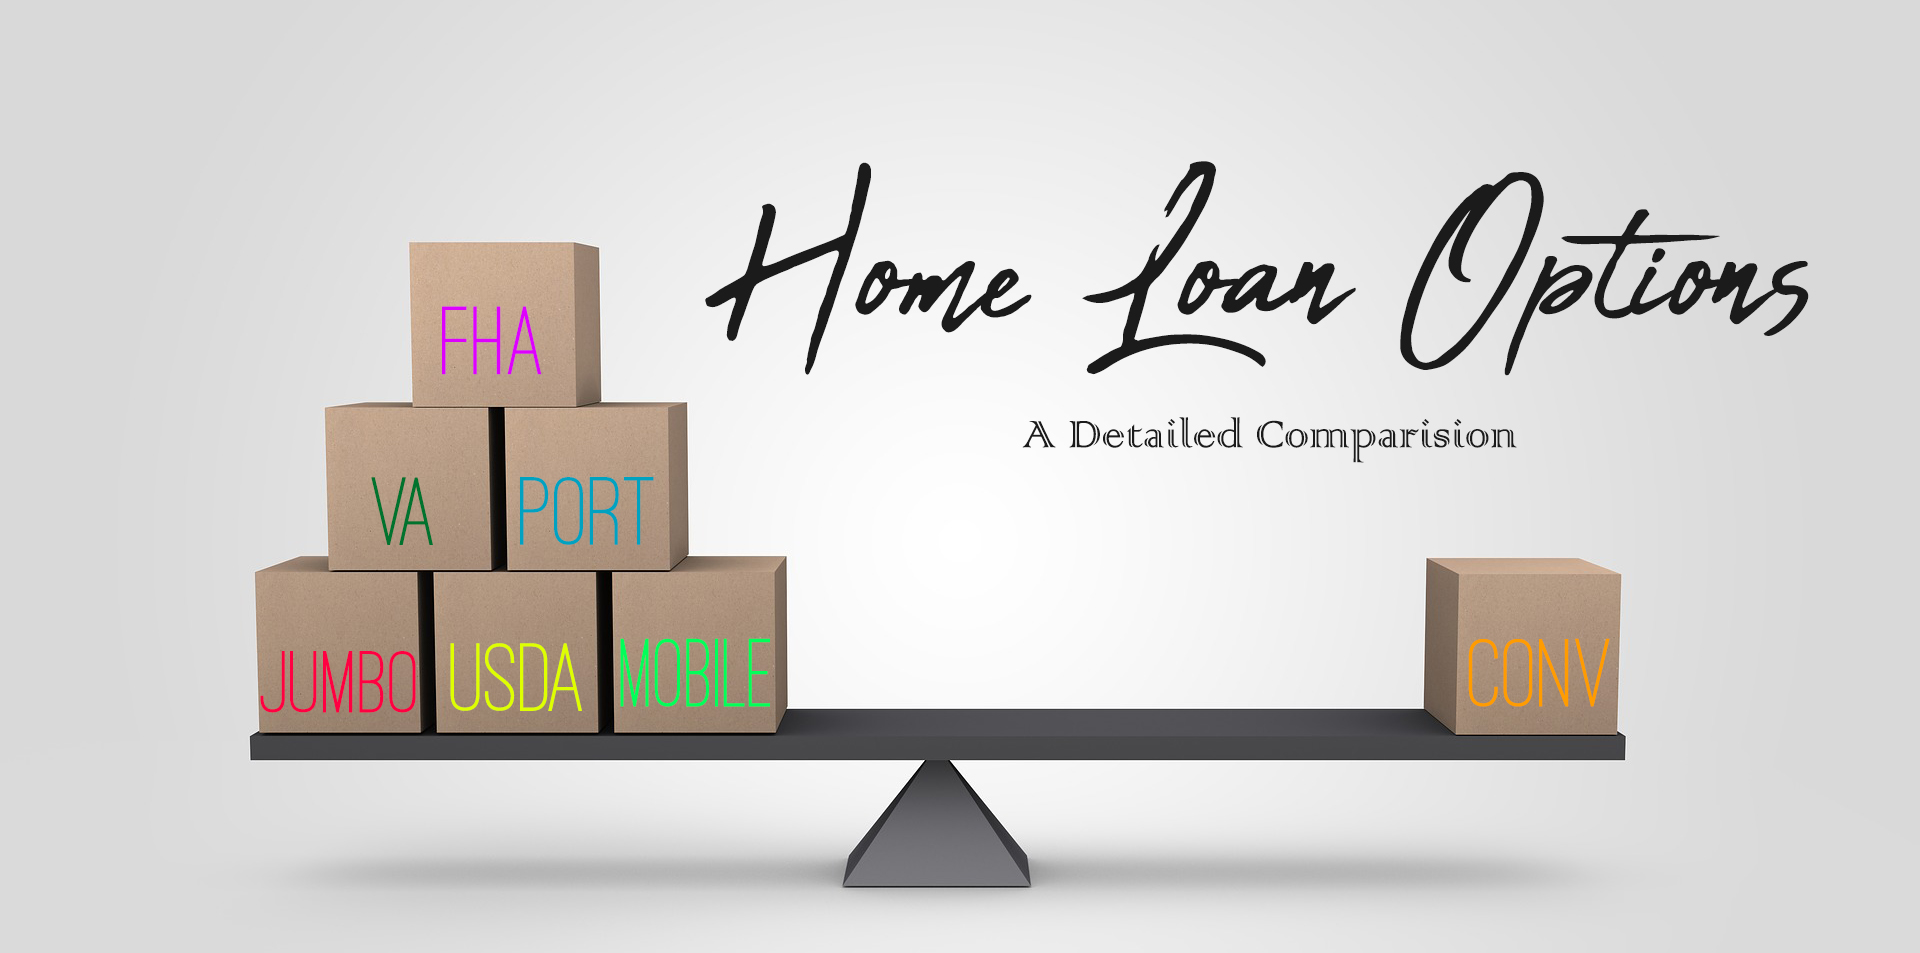 compare home loan options